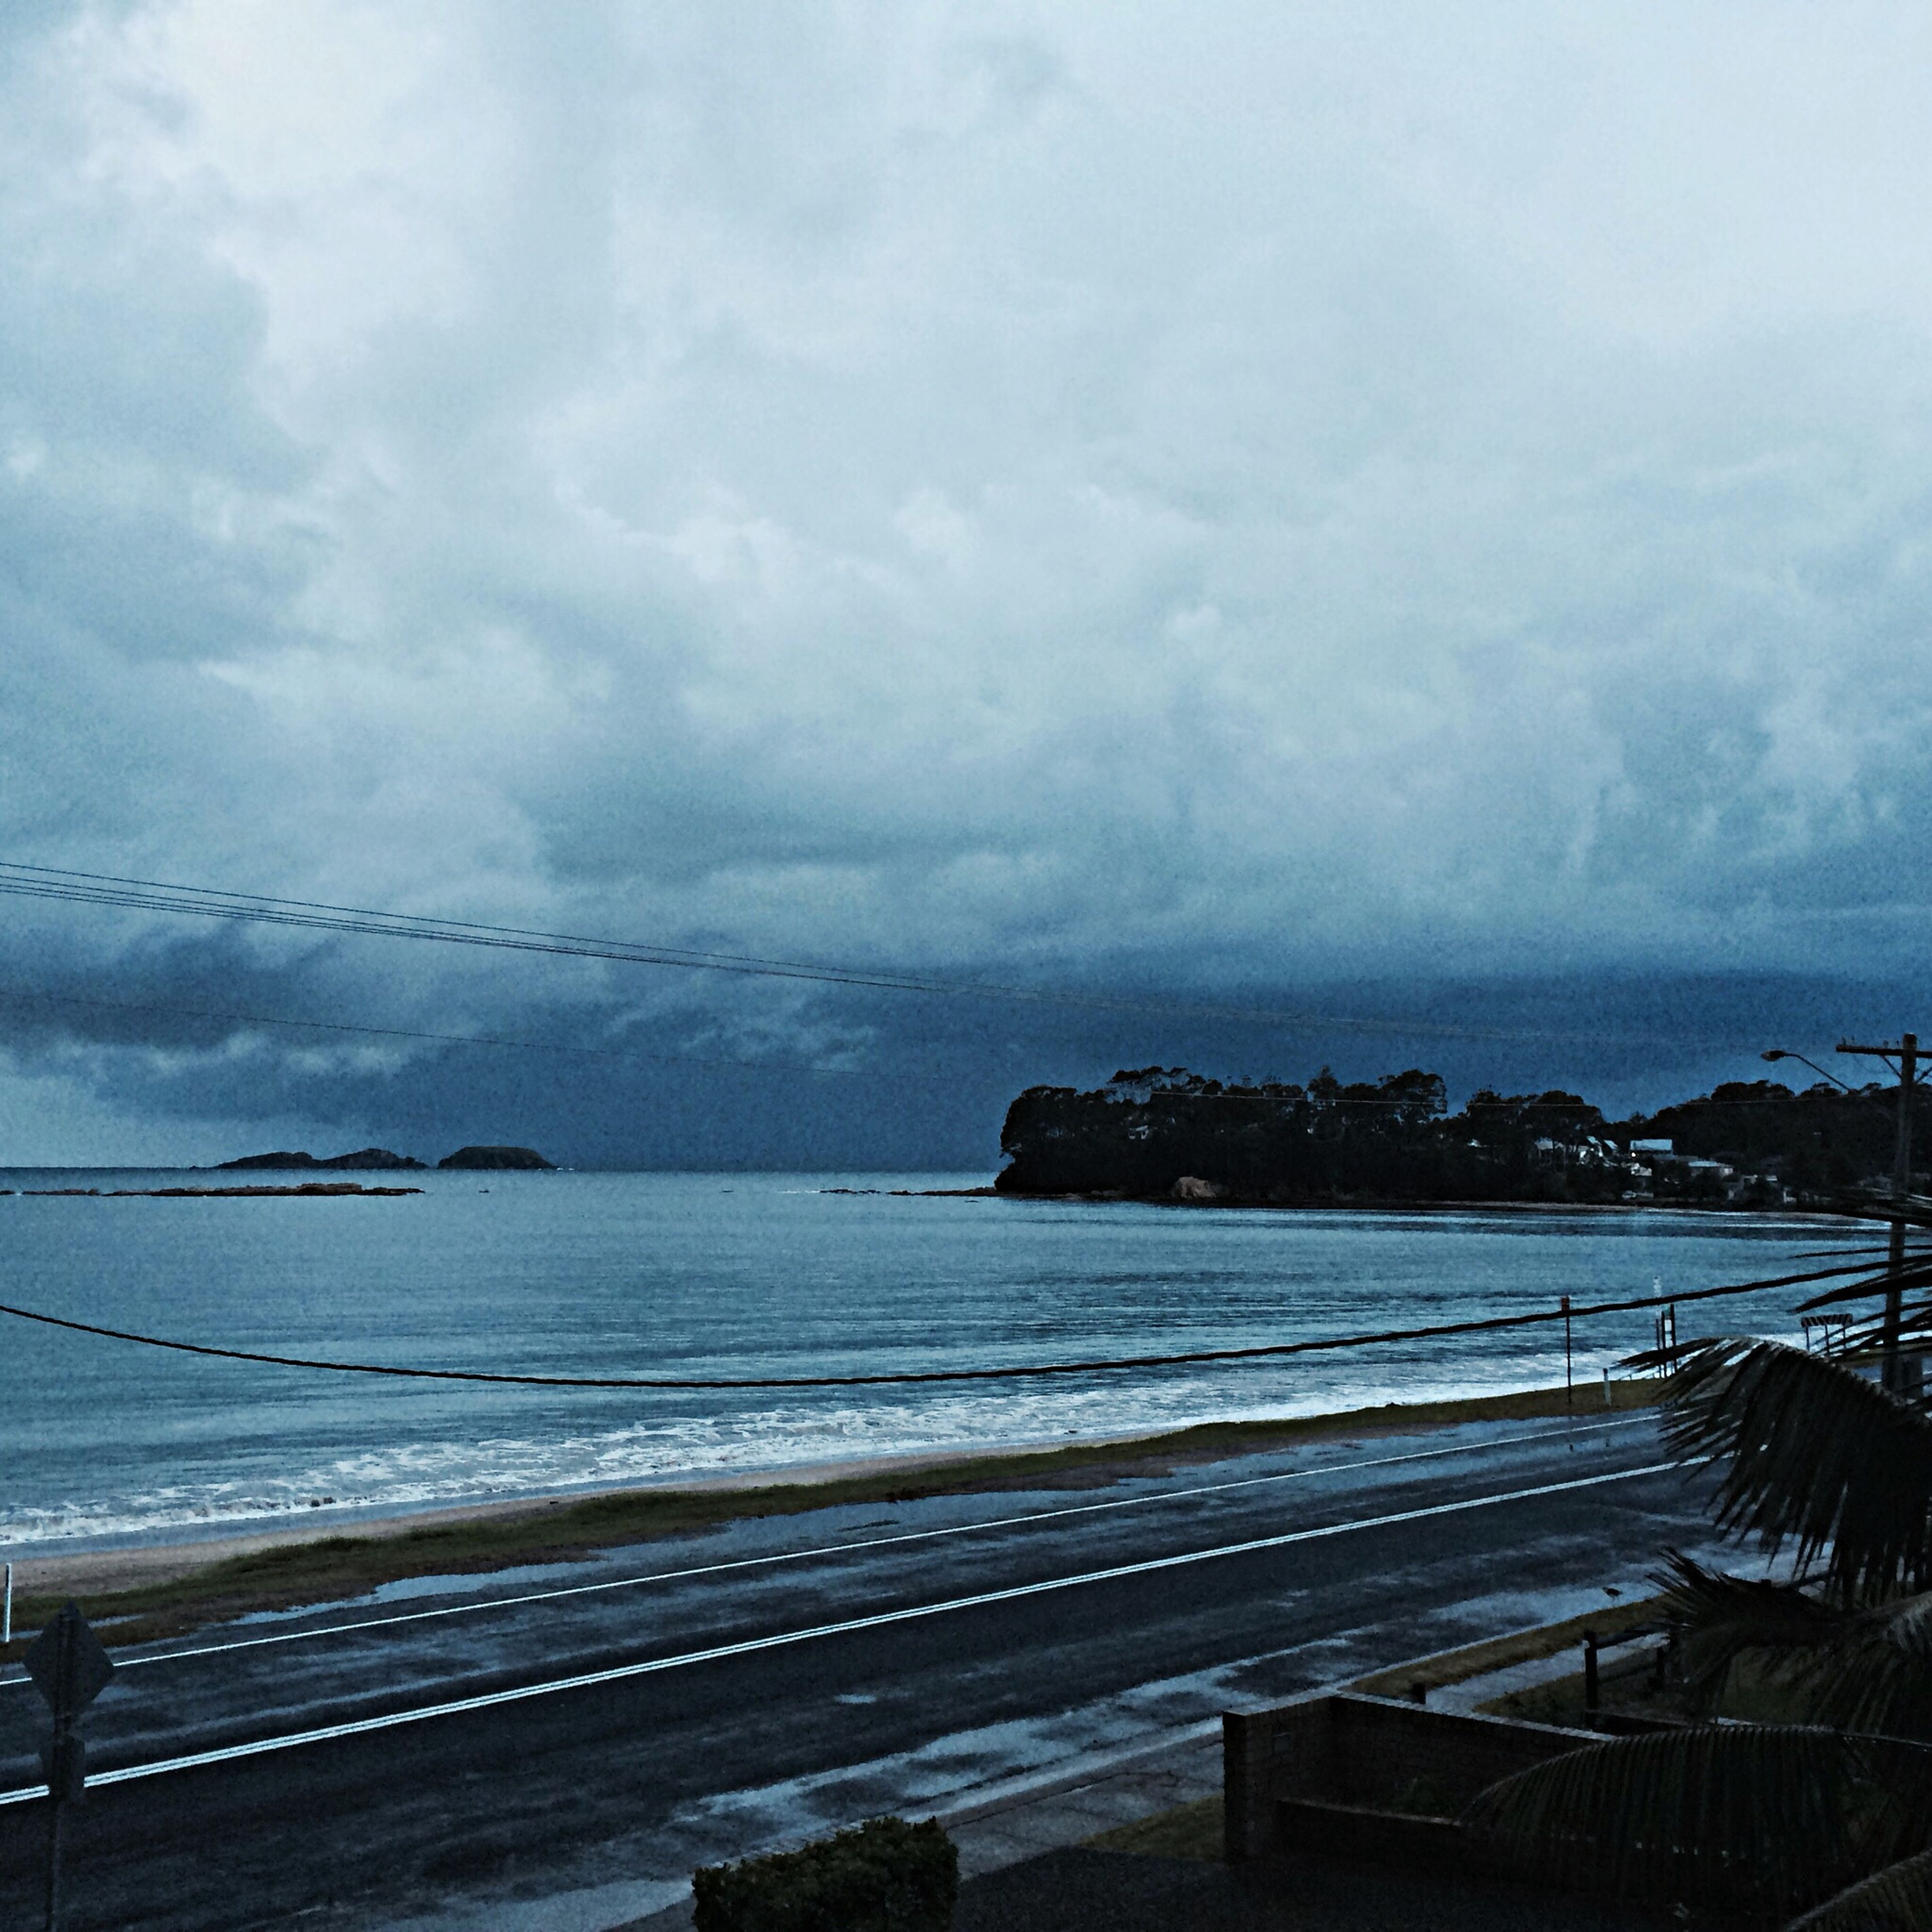 sea, sky, water, horizon over water, cloud - sky, scenics, cloudy, tranquil scene, tranquility, beauty in nature, beach, weather, nature, shore, overcast, cloud, idyllic, coastline, storm cloud, outdoors